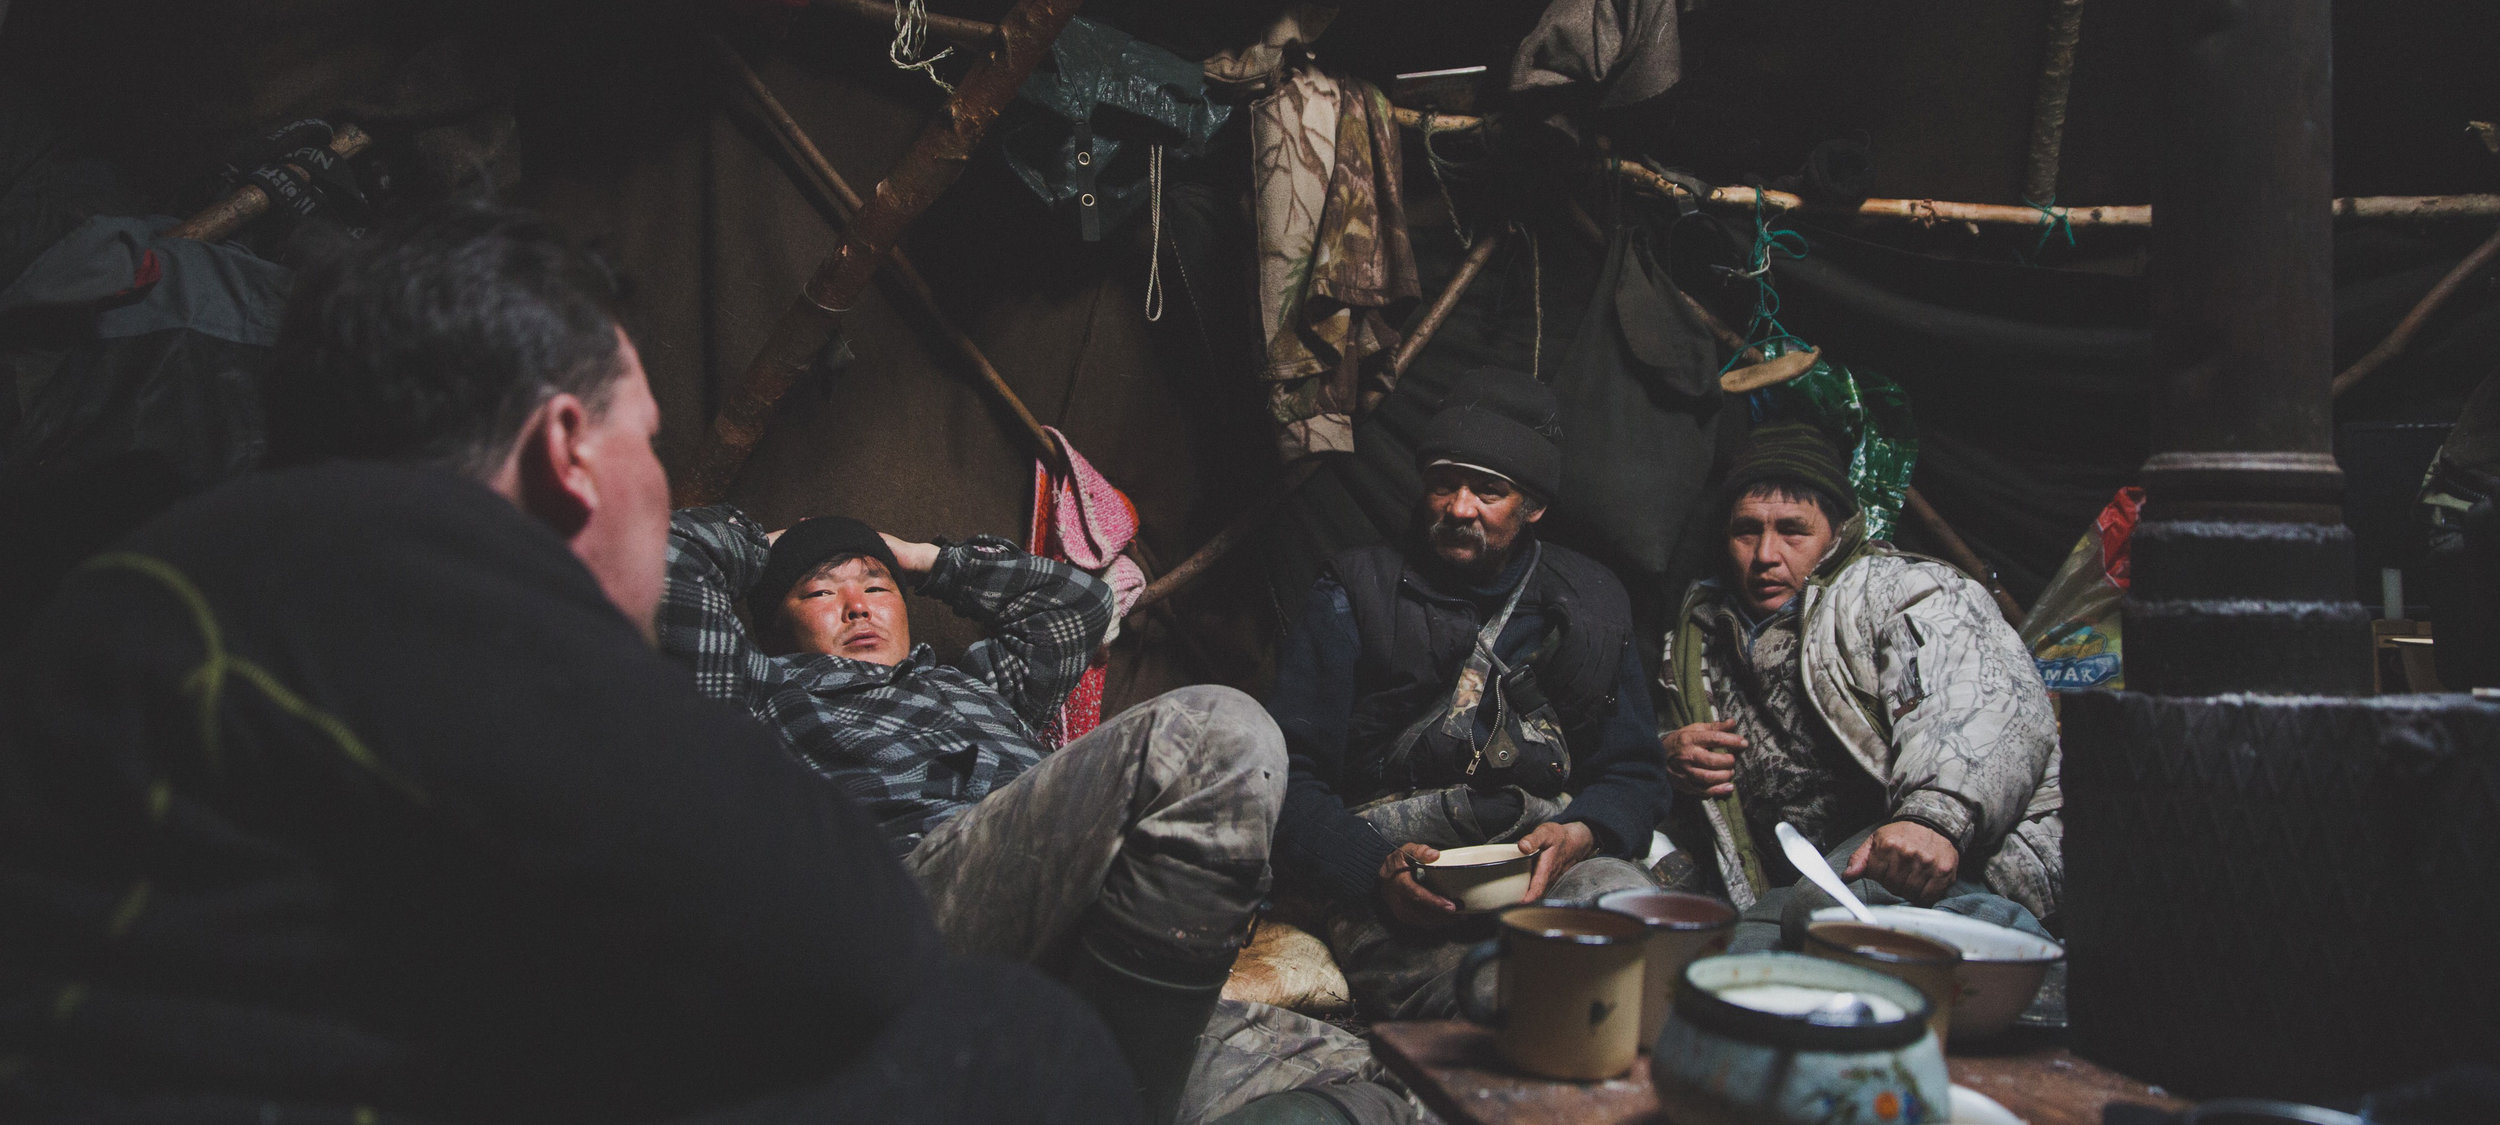 inside-reindeer-herders-yurt-kamchatka-russia-travel-trip-guides-guide-fixer-expedition-inertia-network.jpg